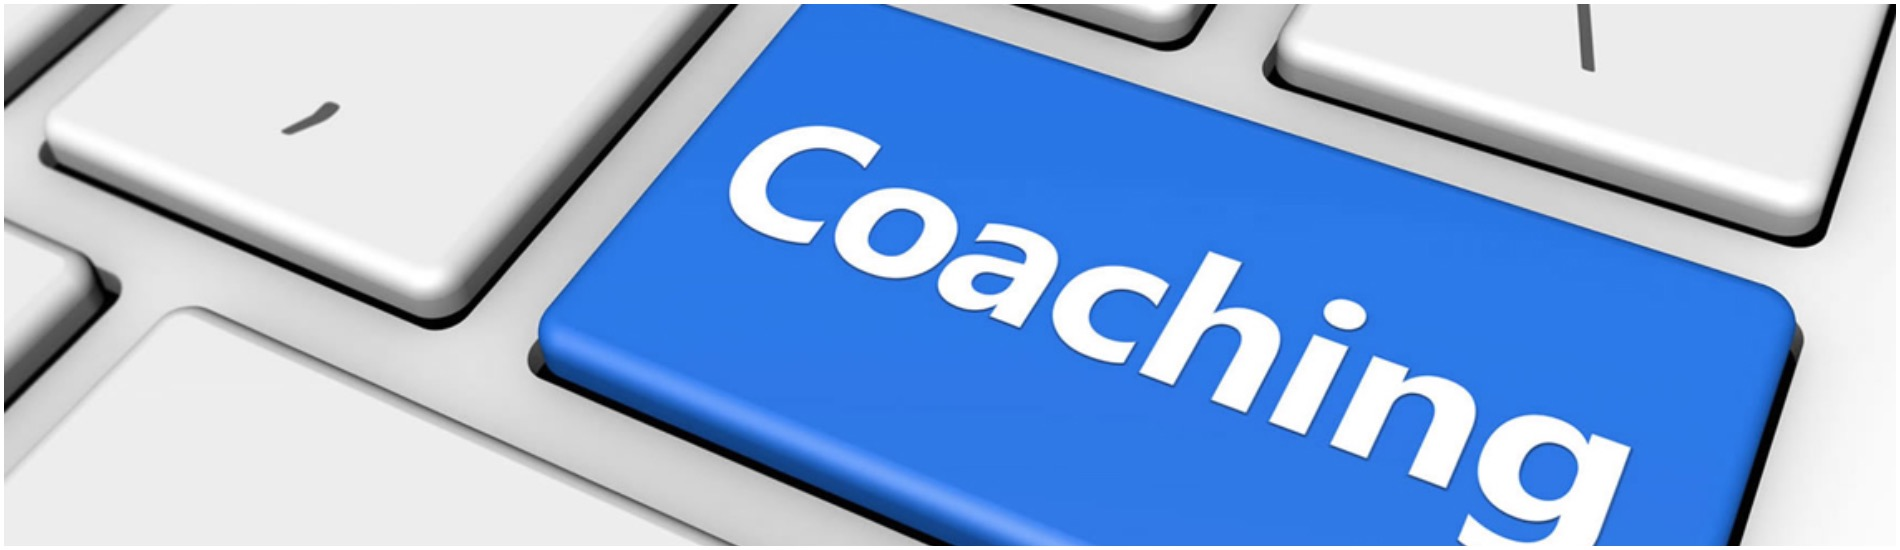 WWPCoach-Online coming soon!!!